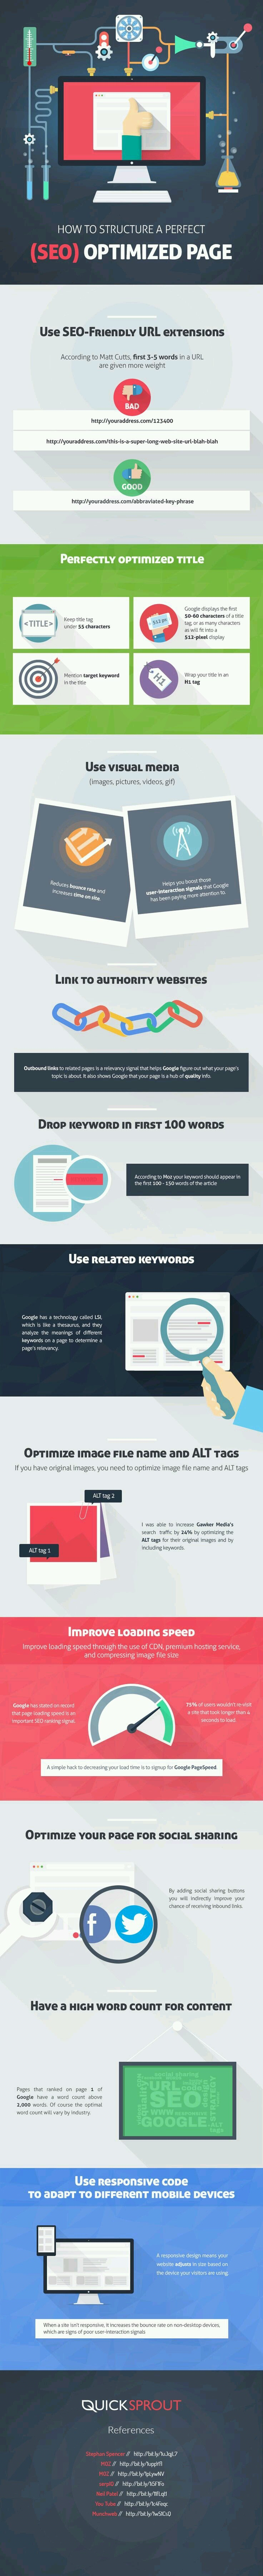 How to structure a perfect #SEO optimized page #Infographic